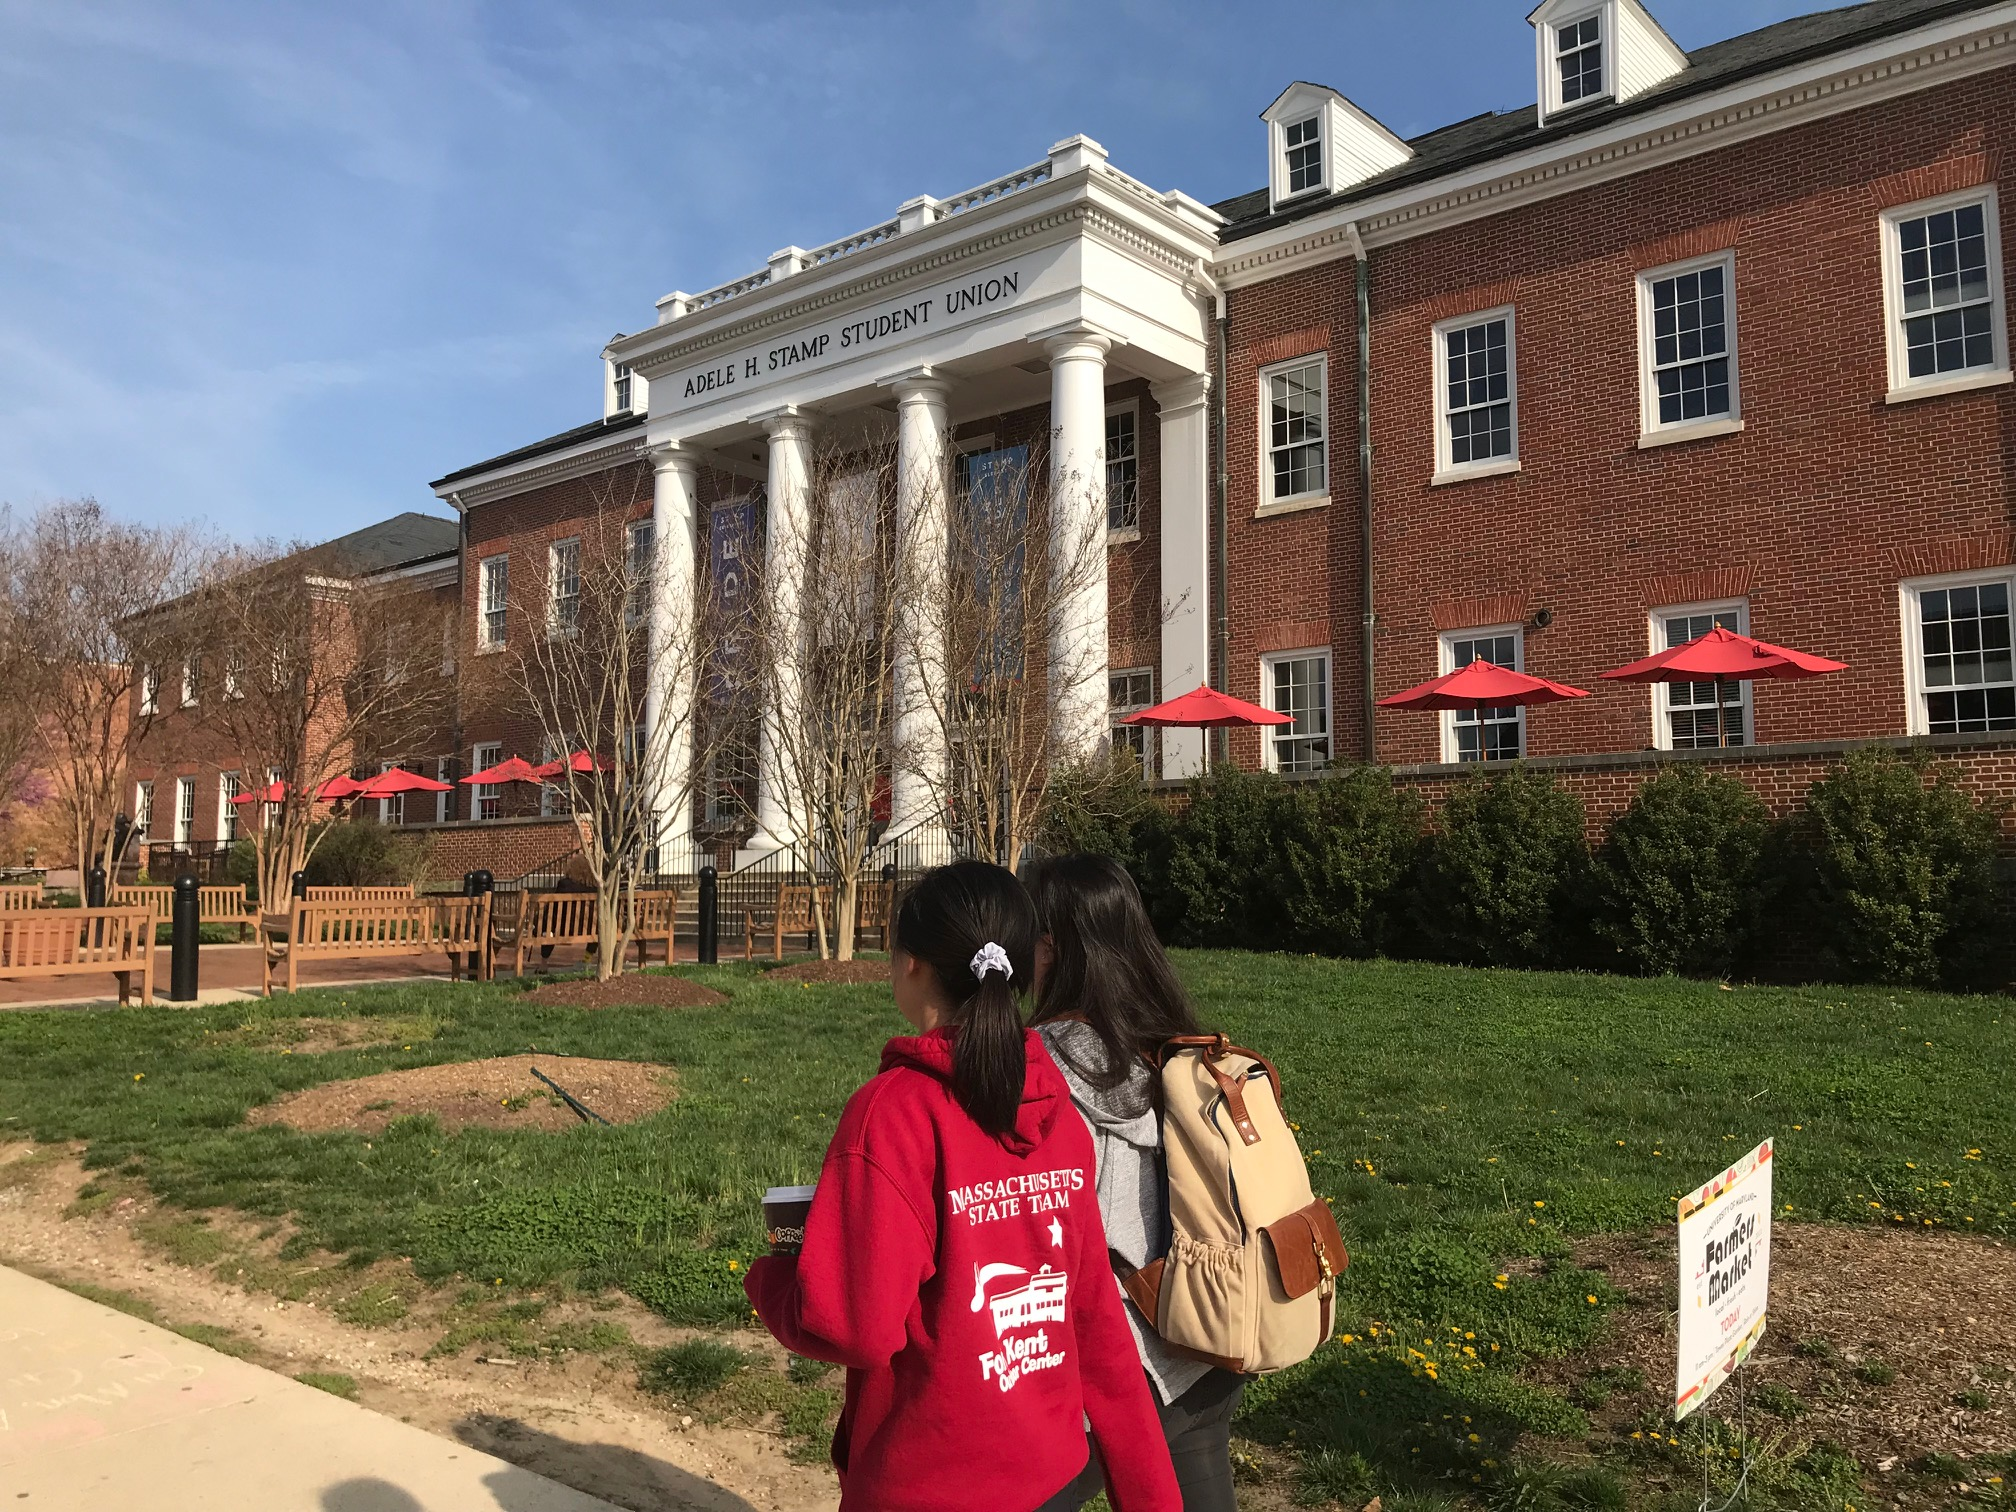 The University of Maryland College Park campus visit